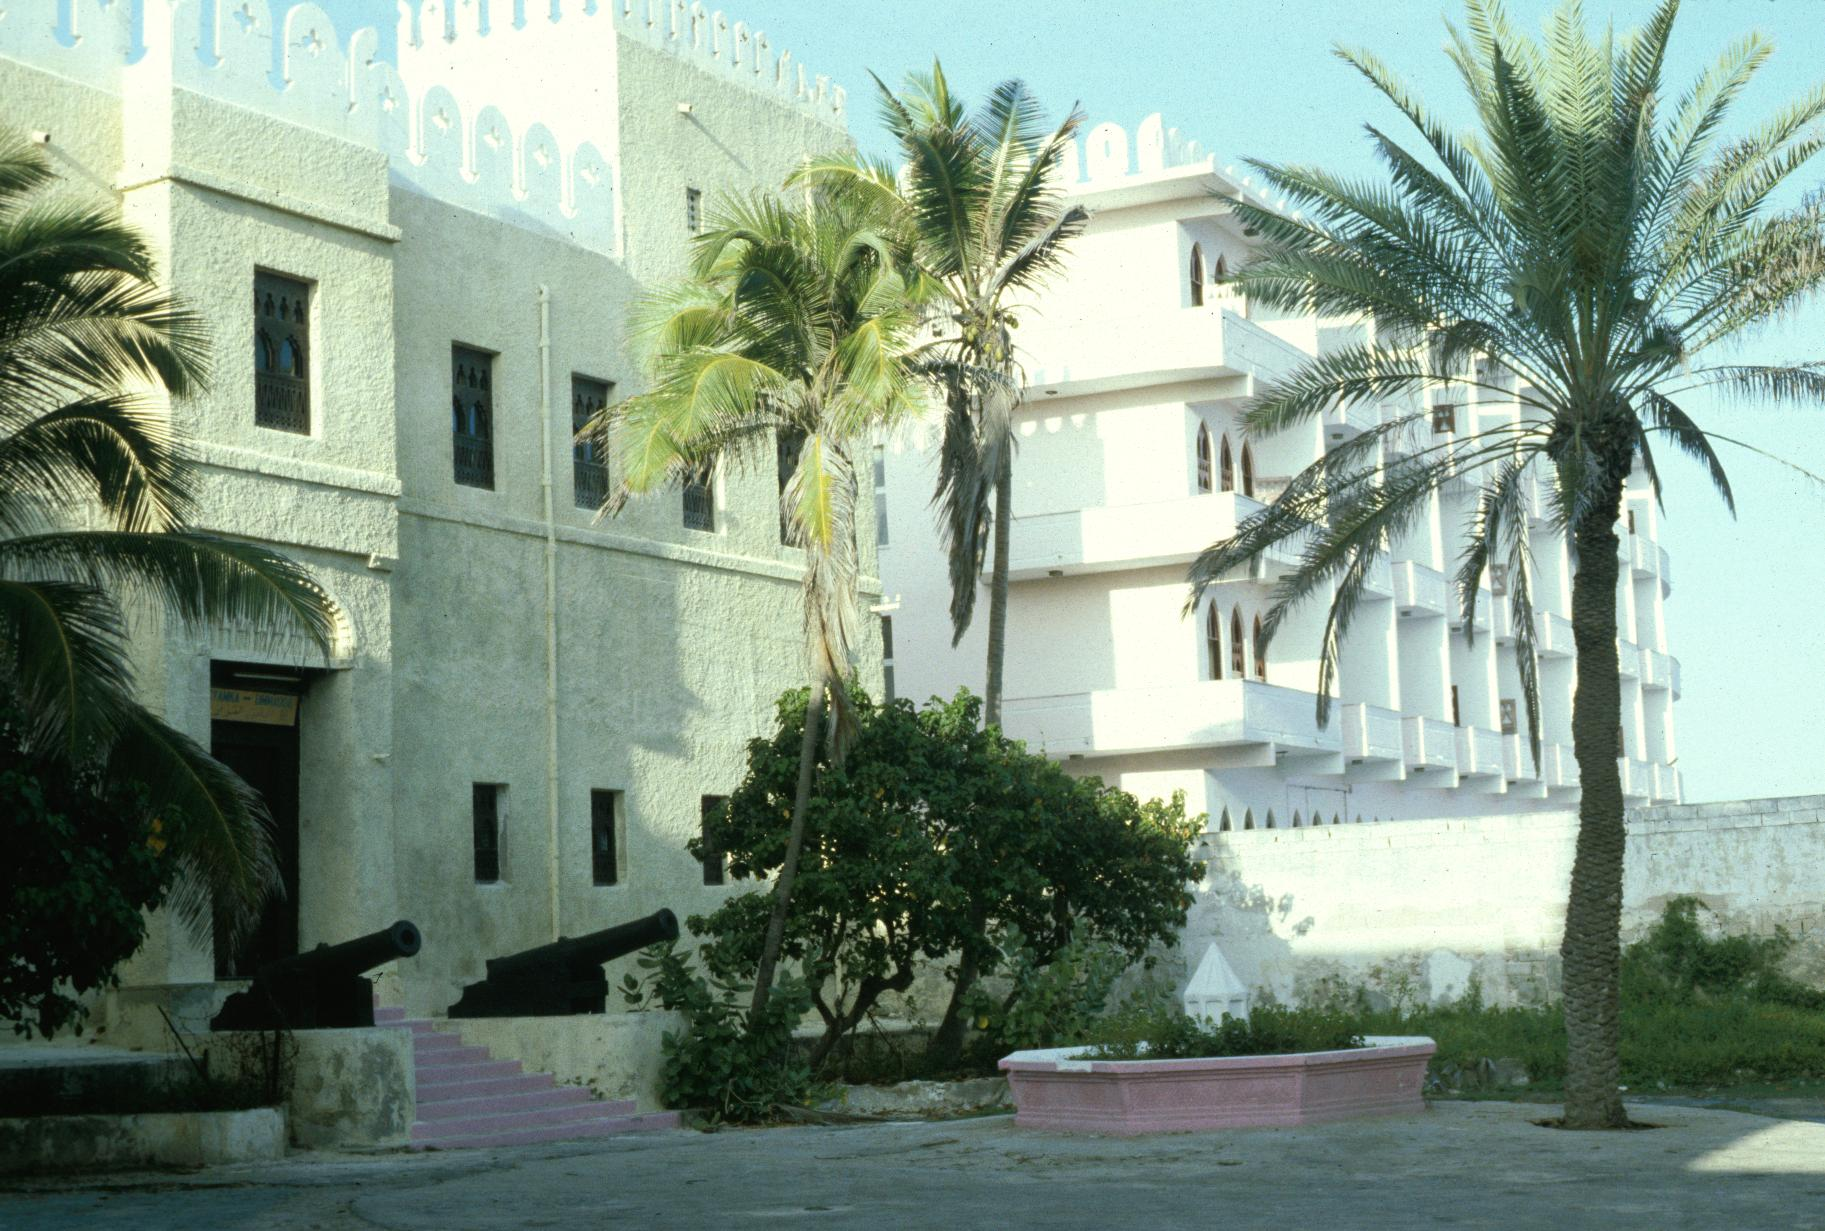 Hotel and Museum, Formerly the Sultan's Palace